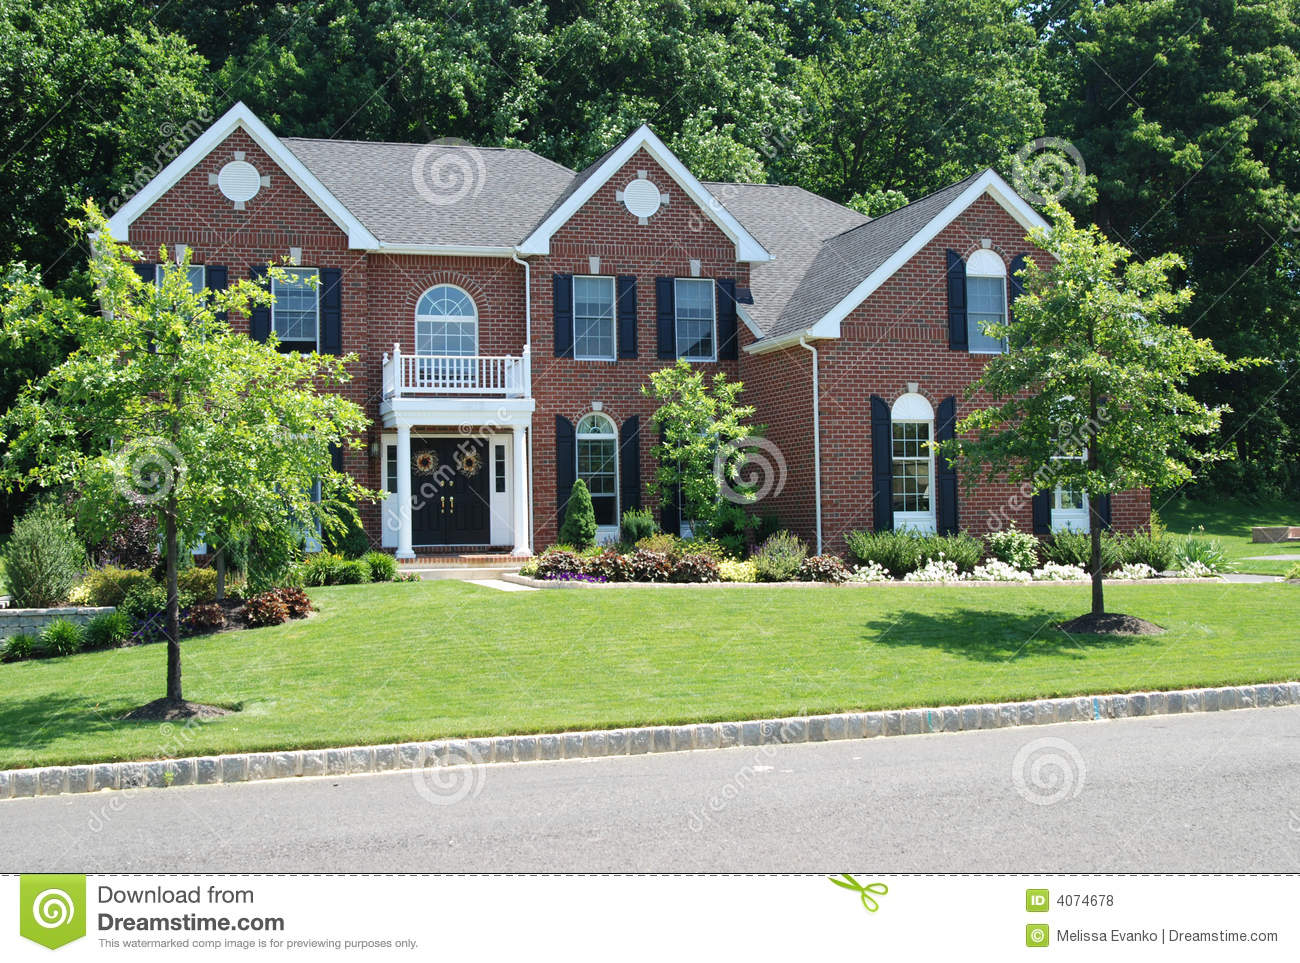 Nice house stock photo image of mortgage real grass for Nice house photo